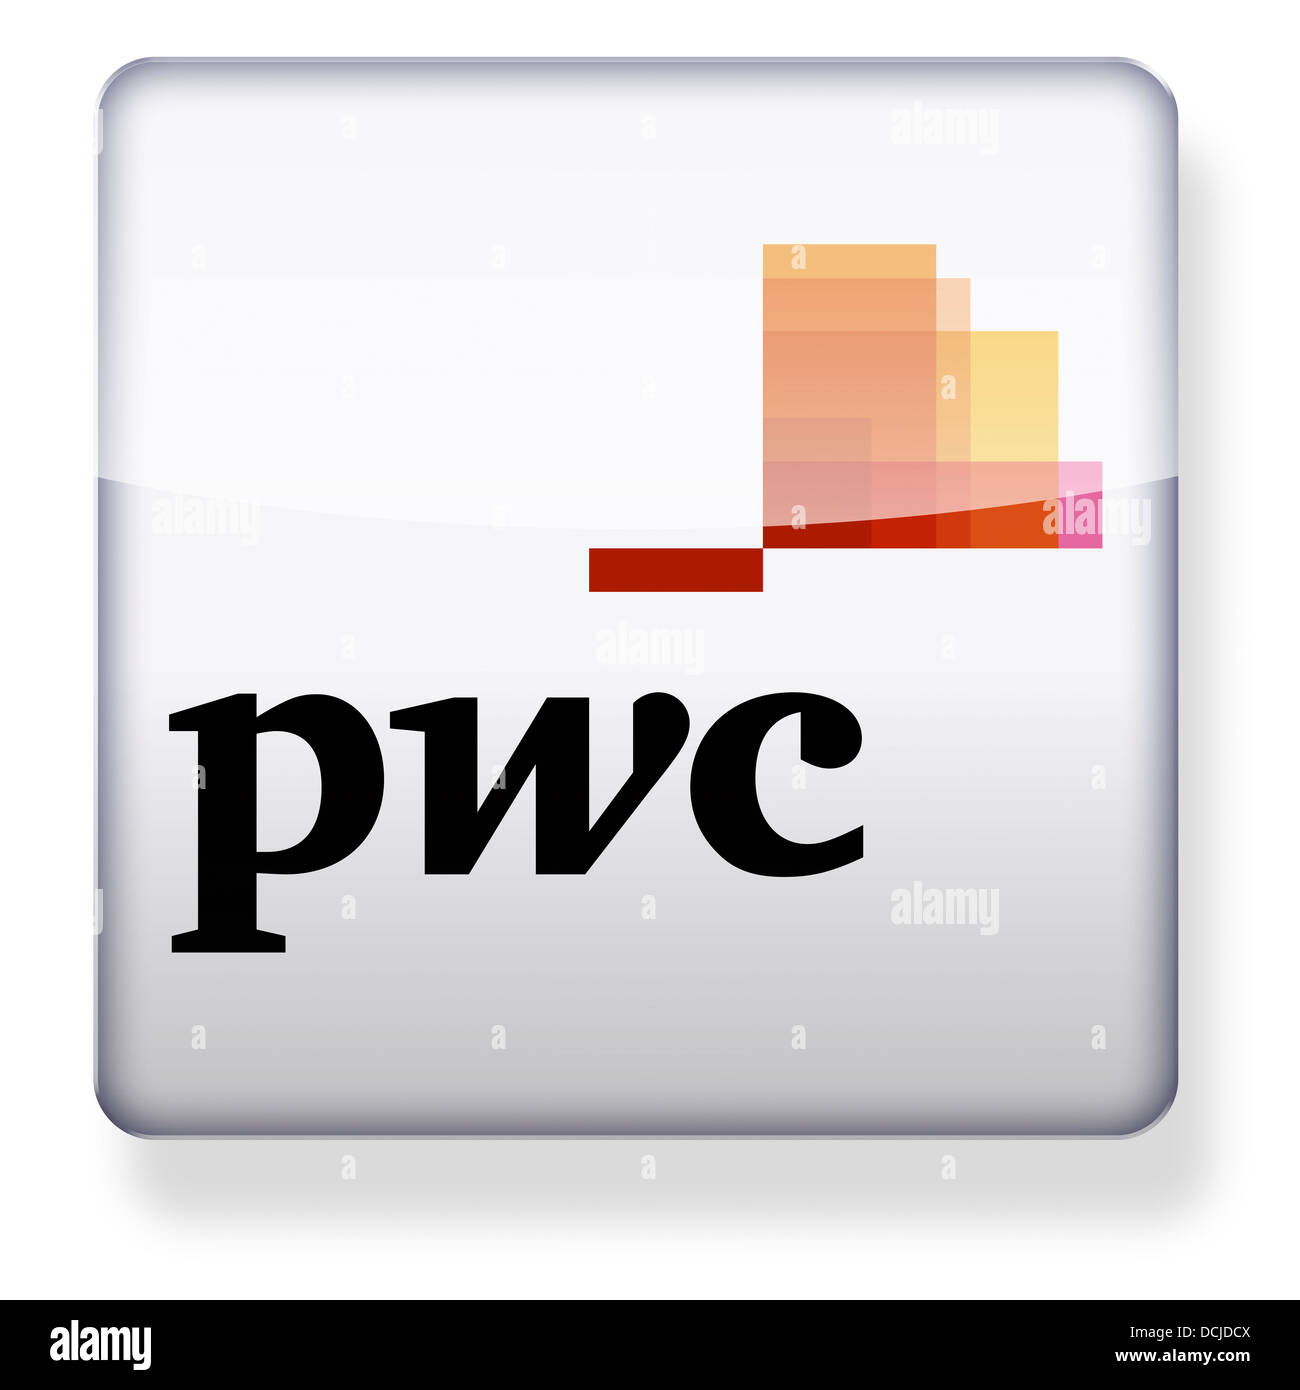 PricewaterhouseCoopers pwc logo as an app icon. Clipping path included. - Stock Image